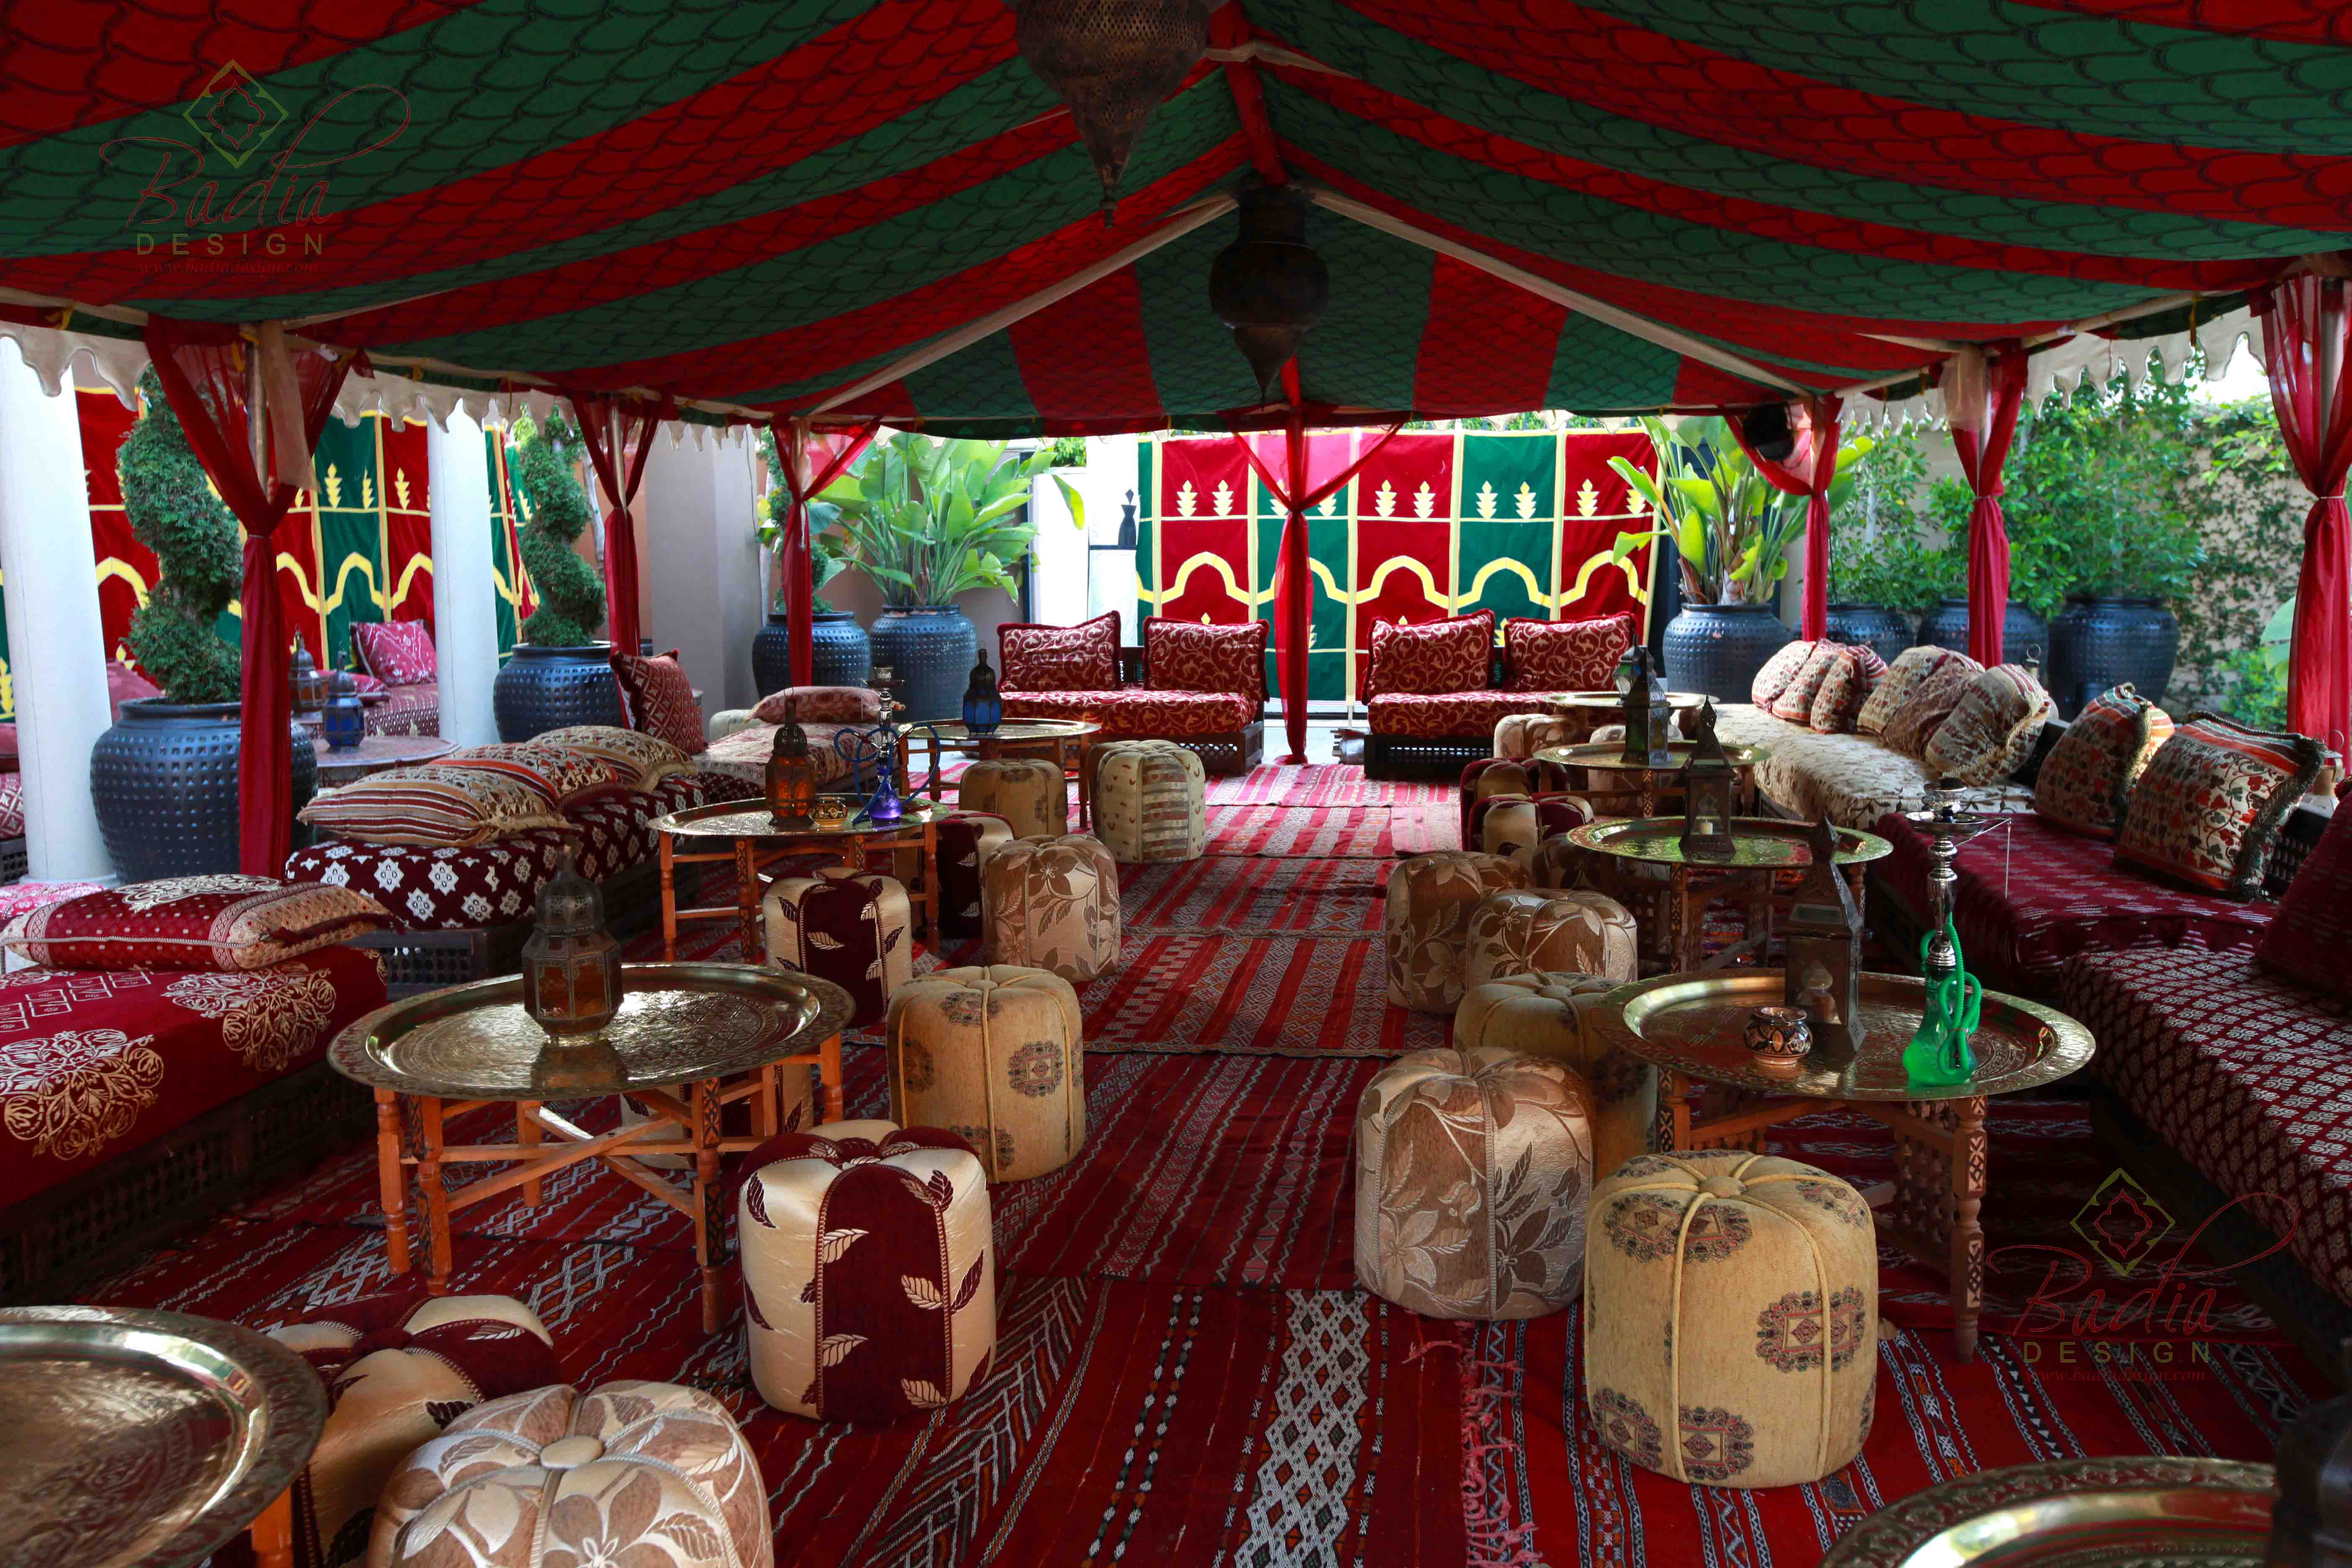 Superior Arabian Nights Themed Party Rentals Los Angeles From Badia Design Inc.